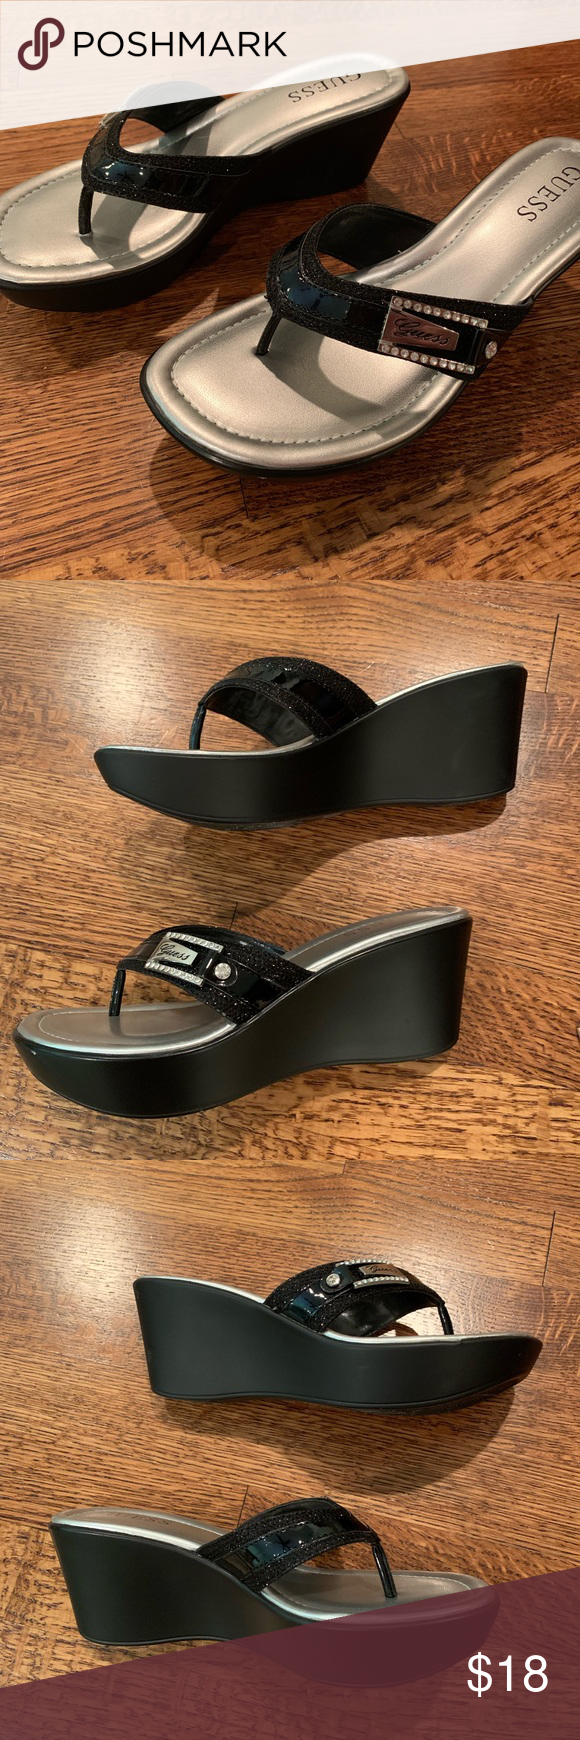 Guess Strappy Platform Wedge Sandals